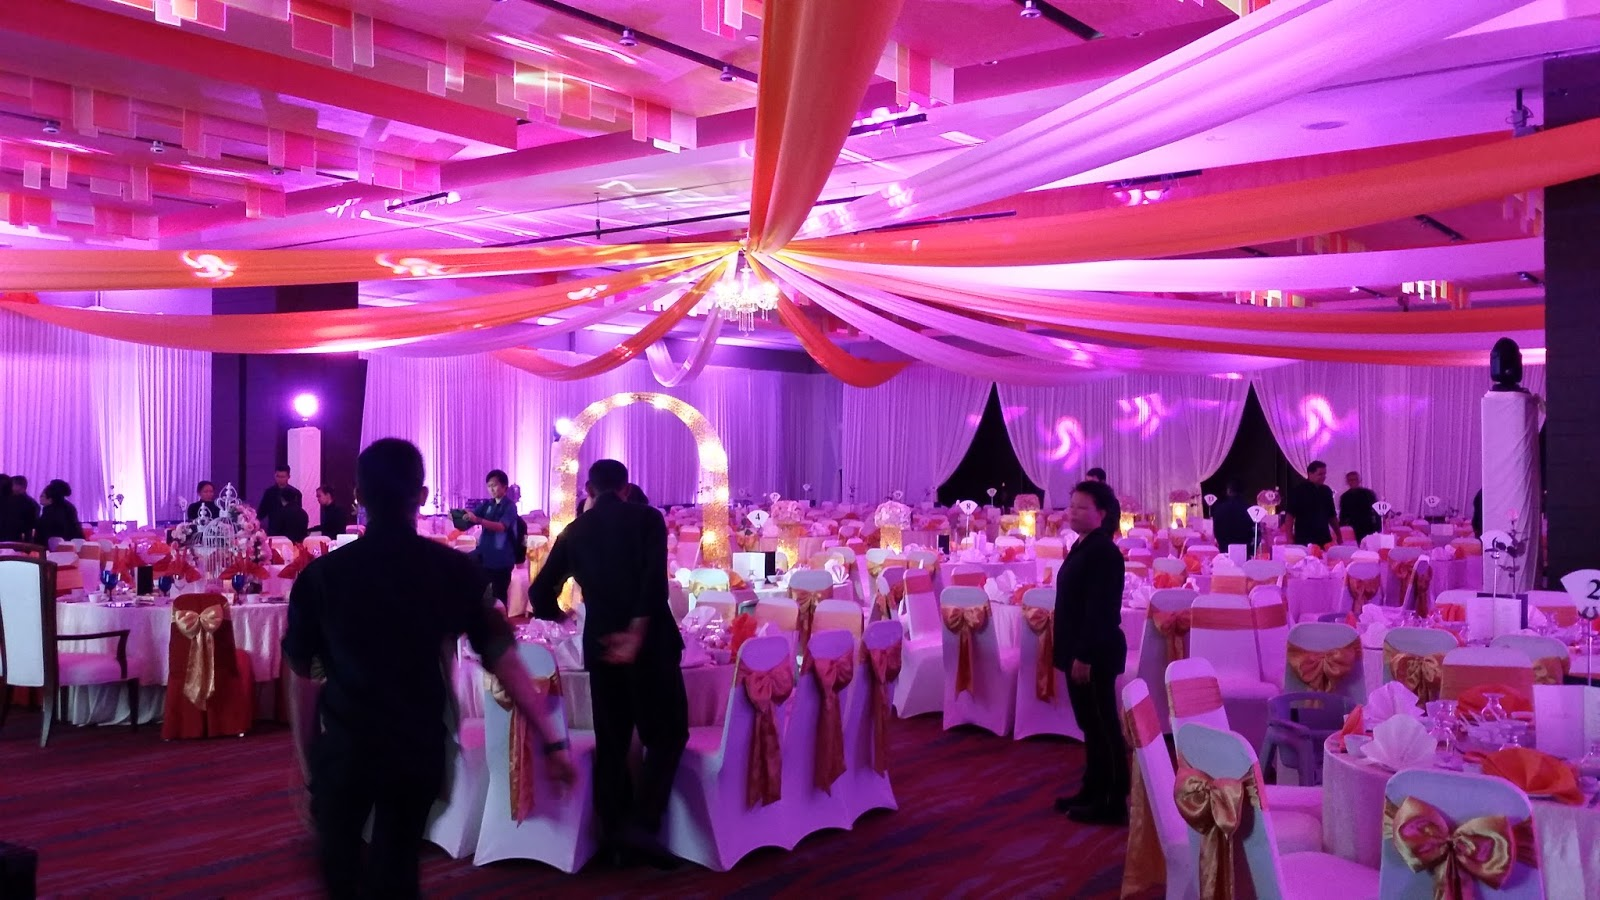 Wedding dinner g hotel penang red occasions posted 10th january 2016 by ang wai cheng junglespirit Images